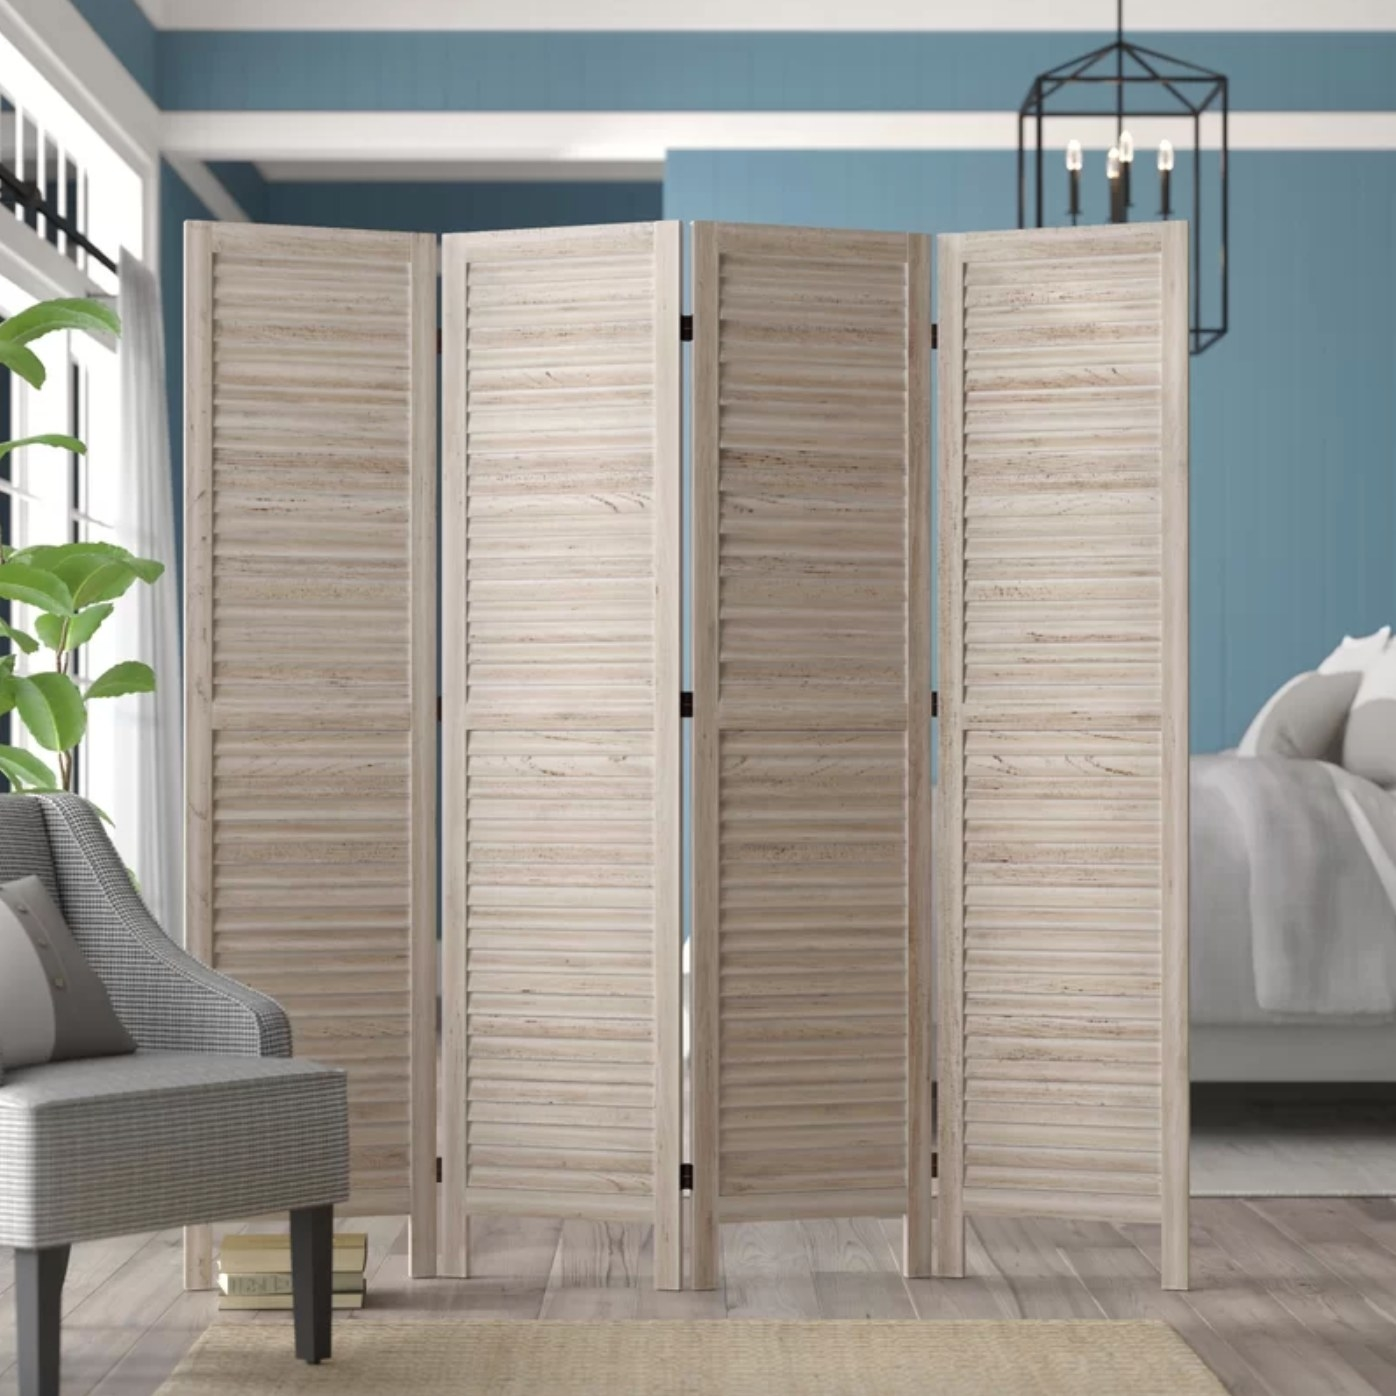 The four-panel room divider in natural